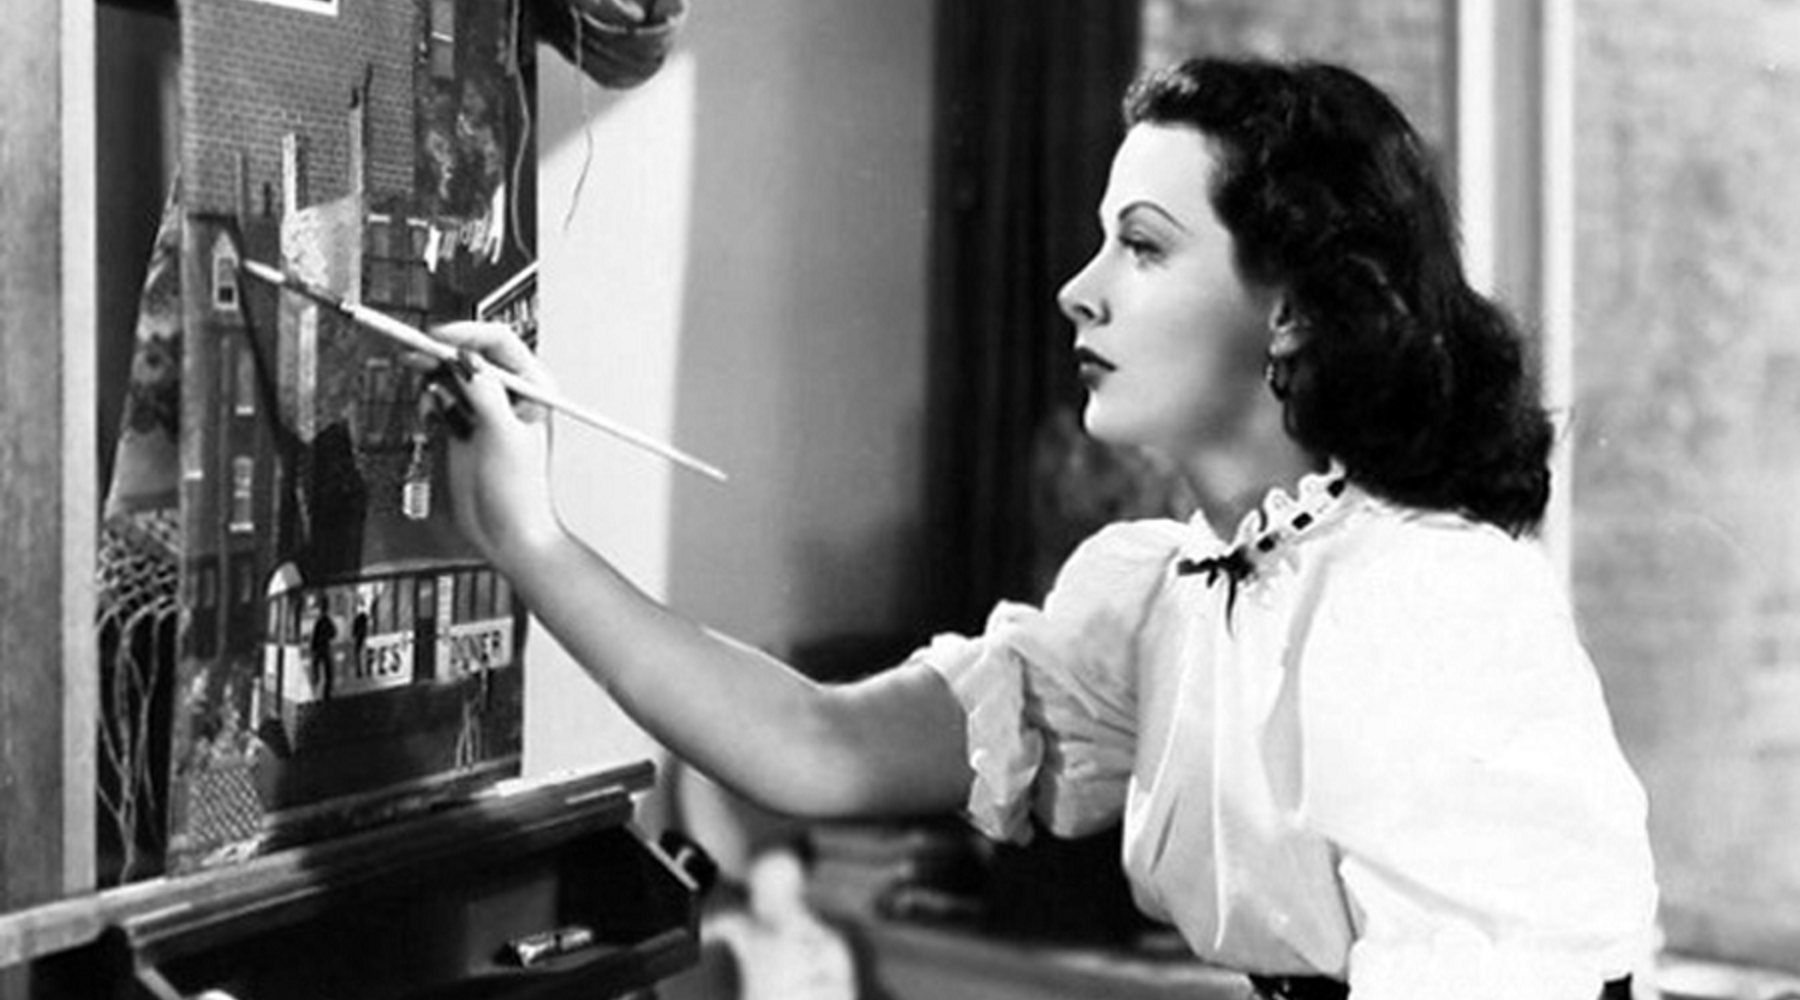 The story of Hedy Lamarr, the Hollywood beauty whose